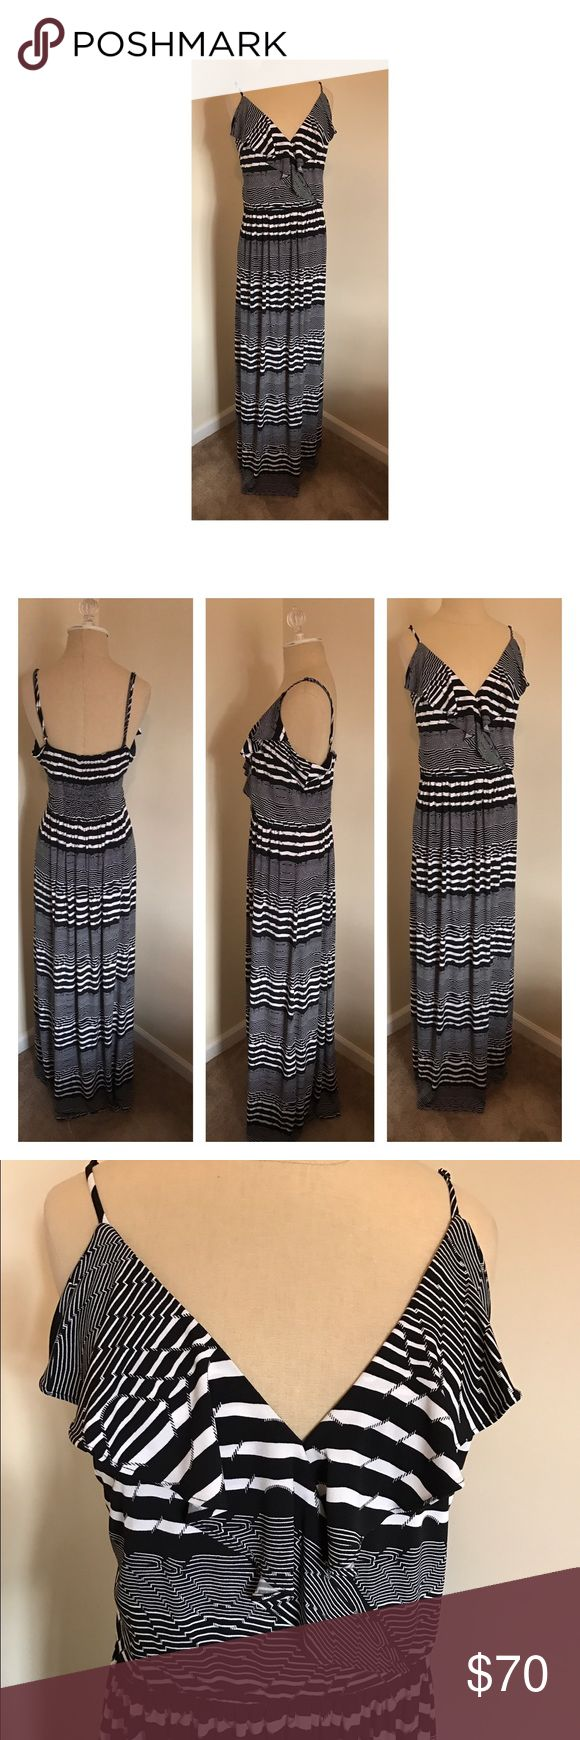 "⭐️Just in⭐️ Betsey Johnson maxi size 14 Sexy Betsey Johnson black and white maxi dress size 14. V-neck at bust with spaghetti straps and flowing ruffle. Elastic at waist and at back. Light jersey fabric. Adjustable straps. Underarm to underarm 20"". Bust, where shoulder strap meets bust, to hem 58"". so this dress is long! Great for someone tall or who loves heels. Like new. Betsey Johnson Dresses Maxi"